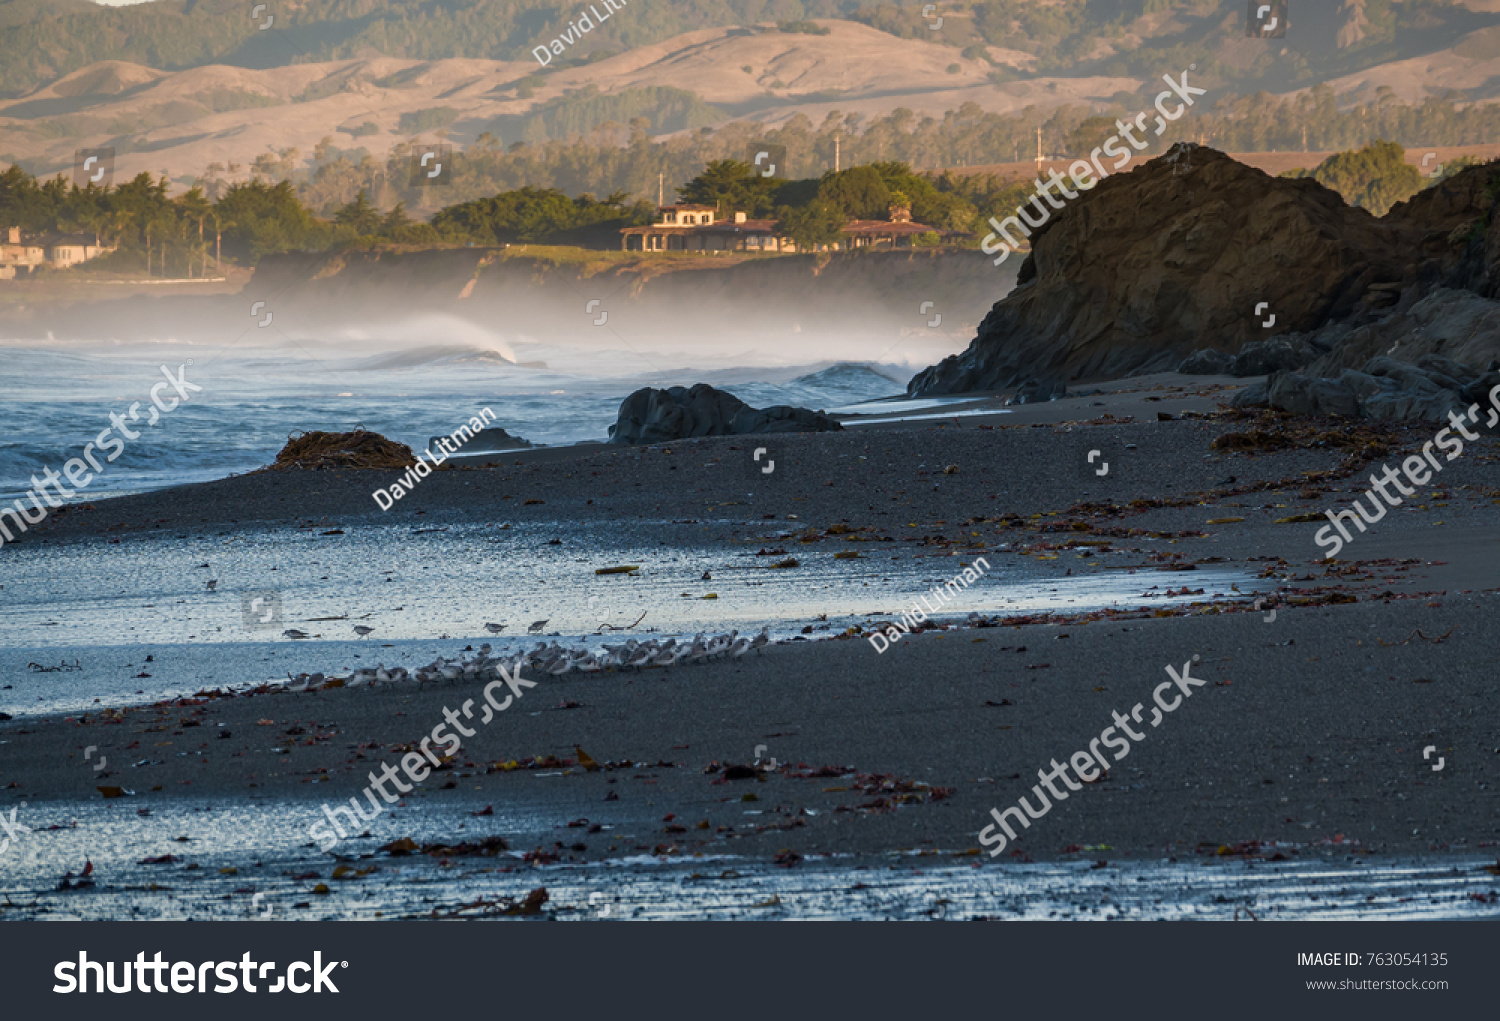 Early morning along the Pacific Coast of California at Leffingwell Landing State Park, looking toward the hills of San Simeon, not far from the Hearst Castle, a famous tourist attraction.